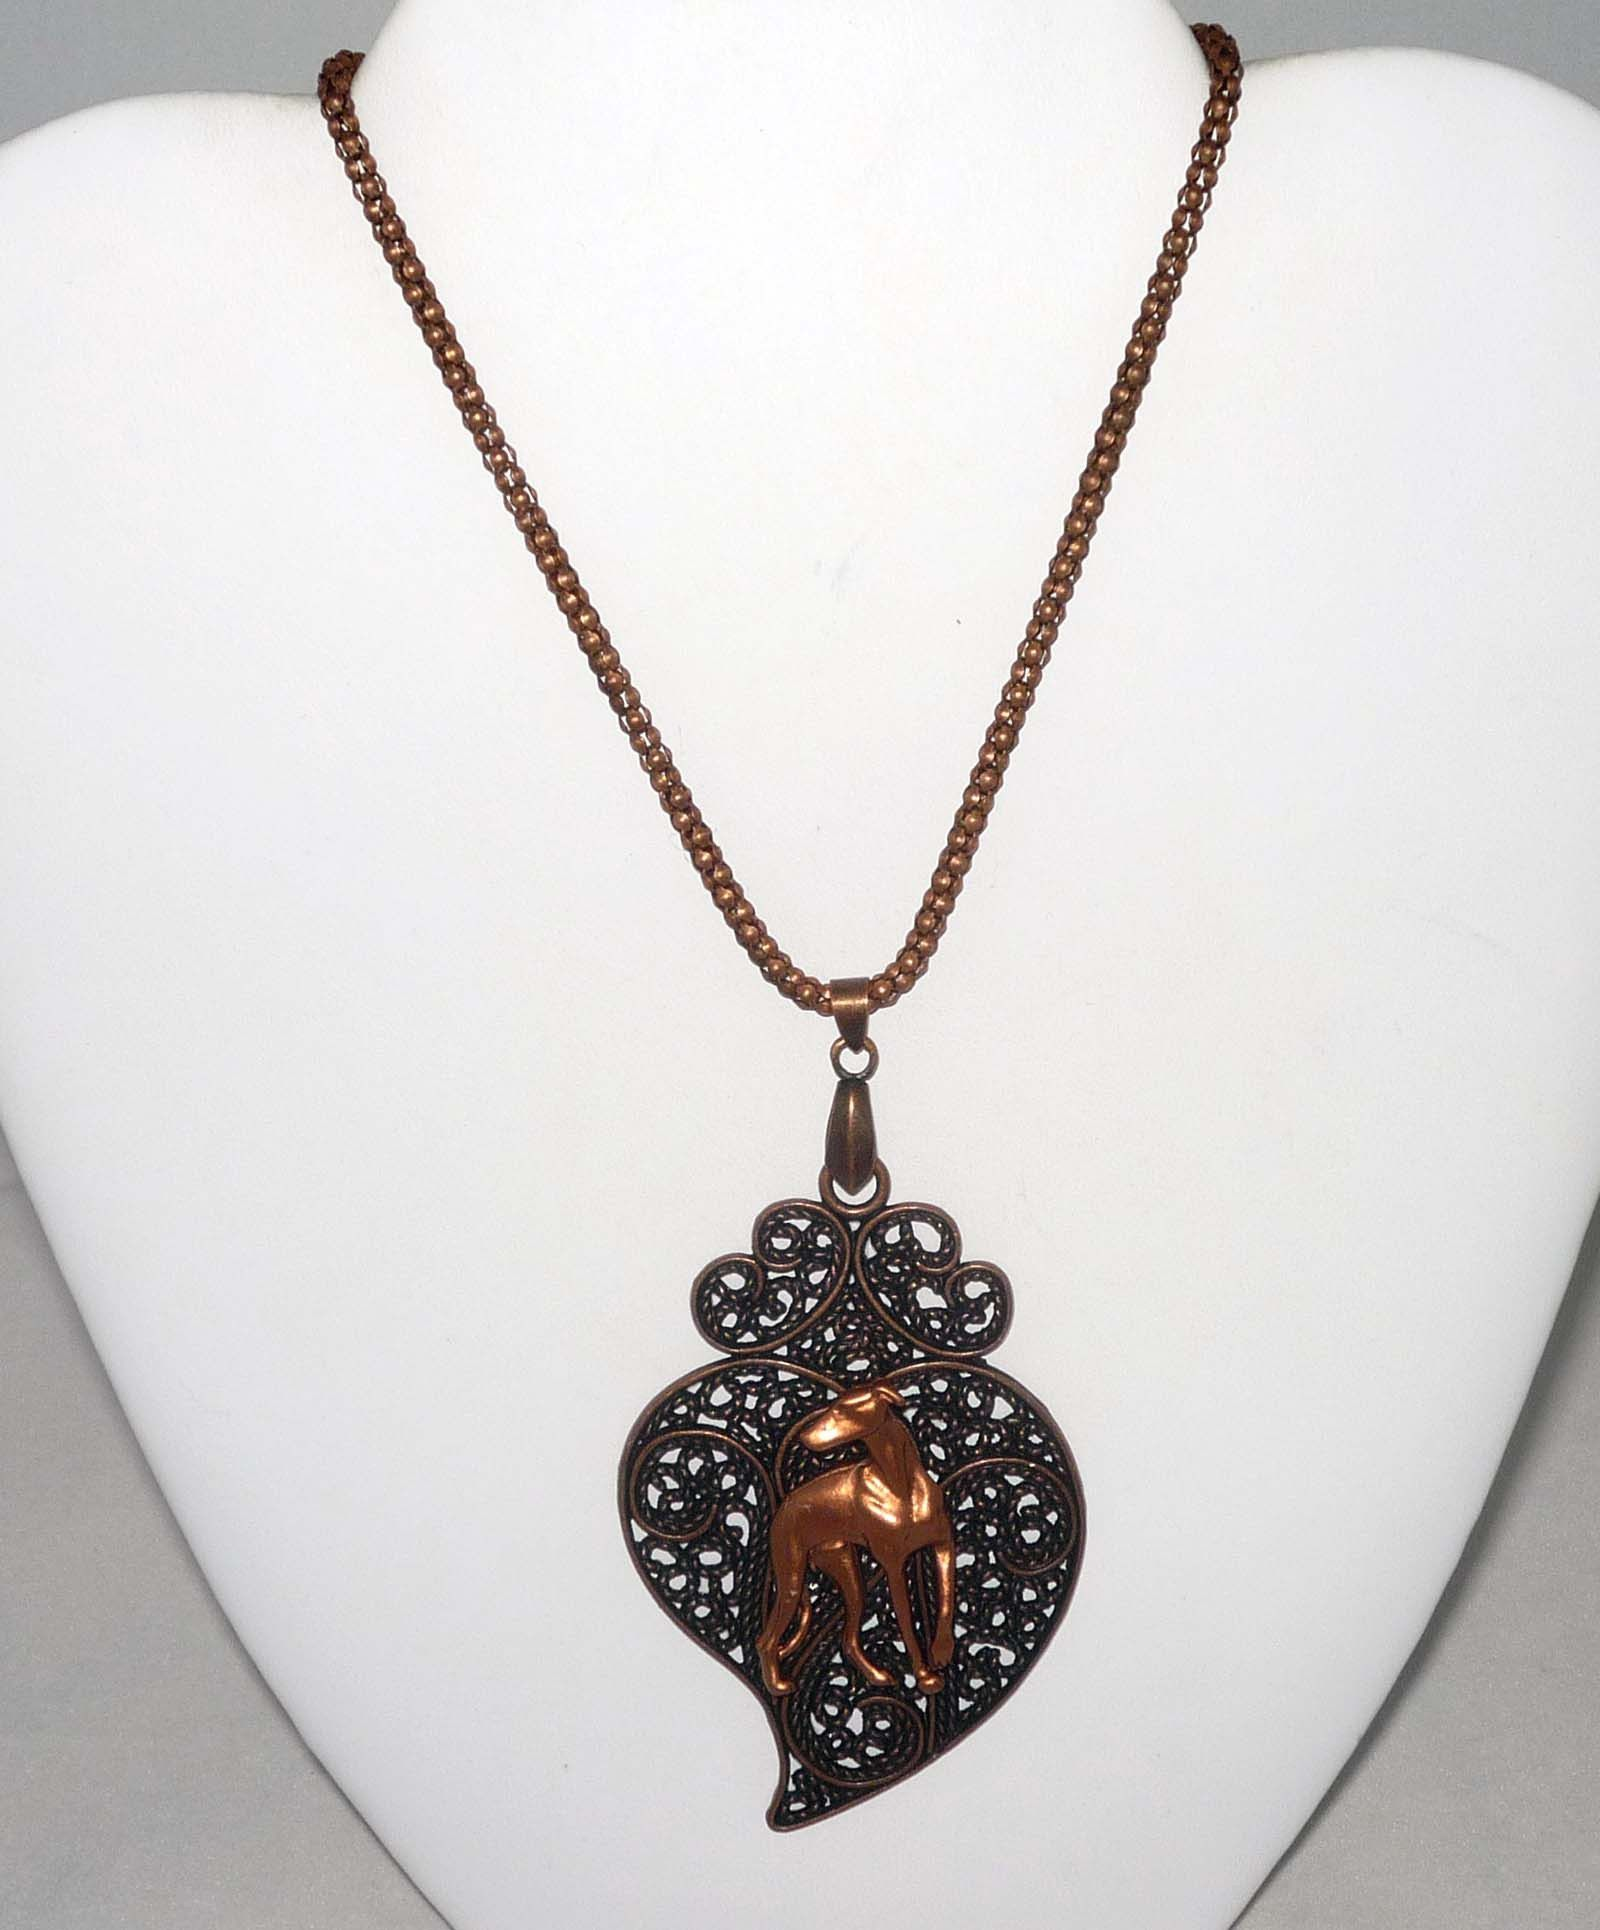 Copper Stylized Leaf Pendant w Copper Looking Back Greyhound / Whippet Dog, Copper Necklace